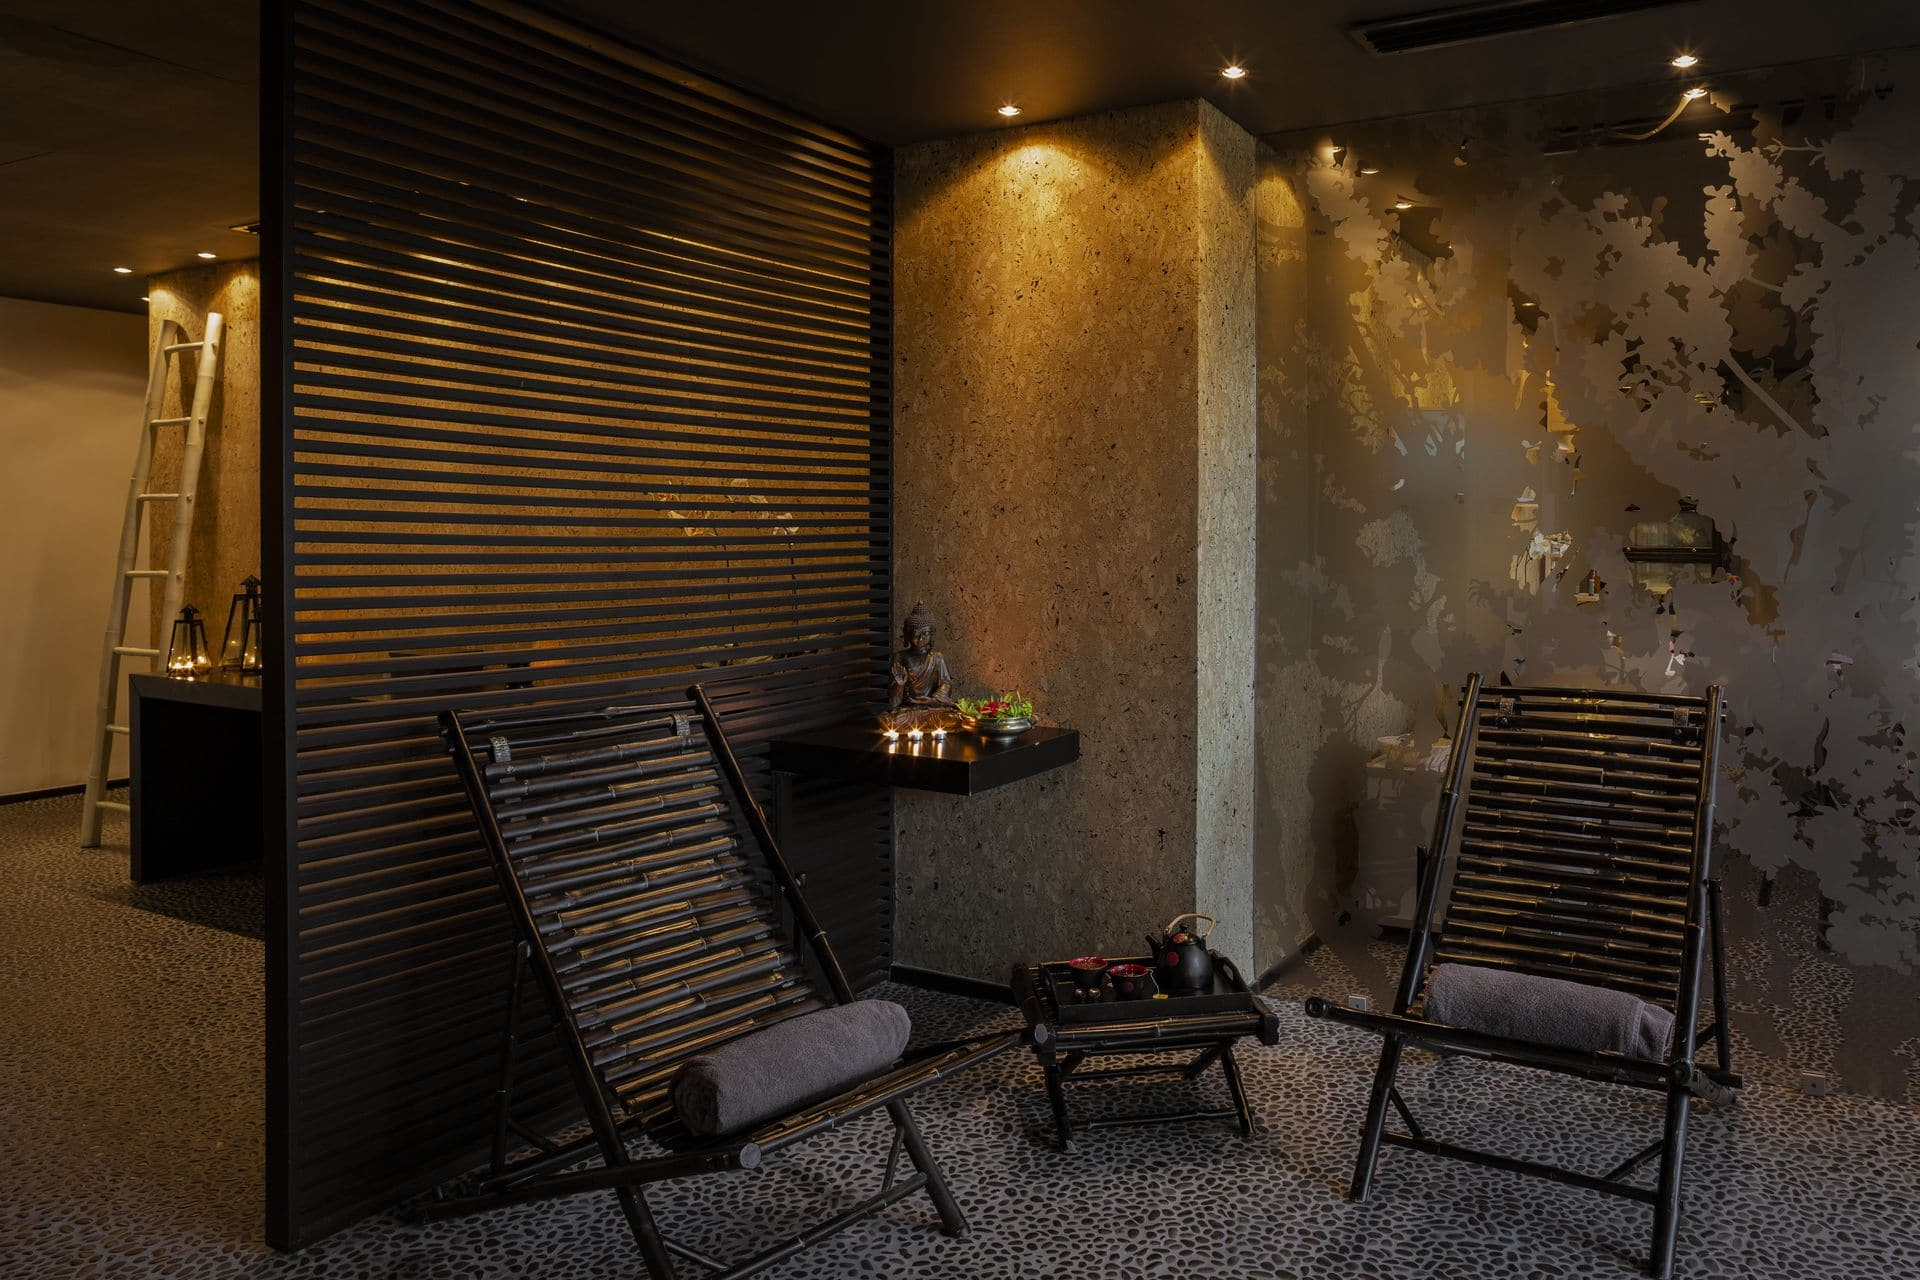 The relaxing spa setup that guests can experience at our luxury hotels in Samos